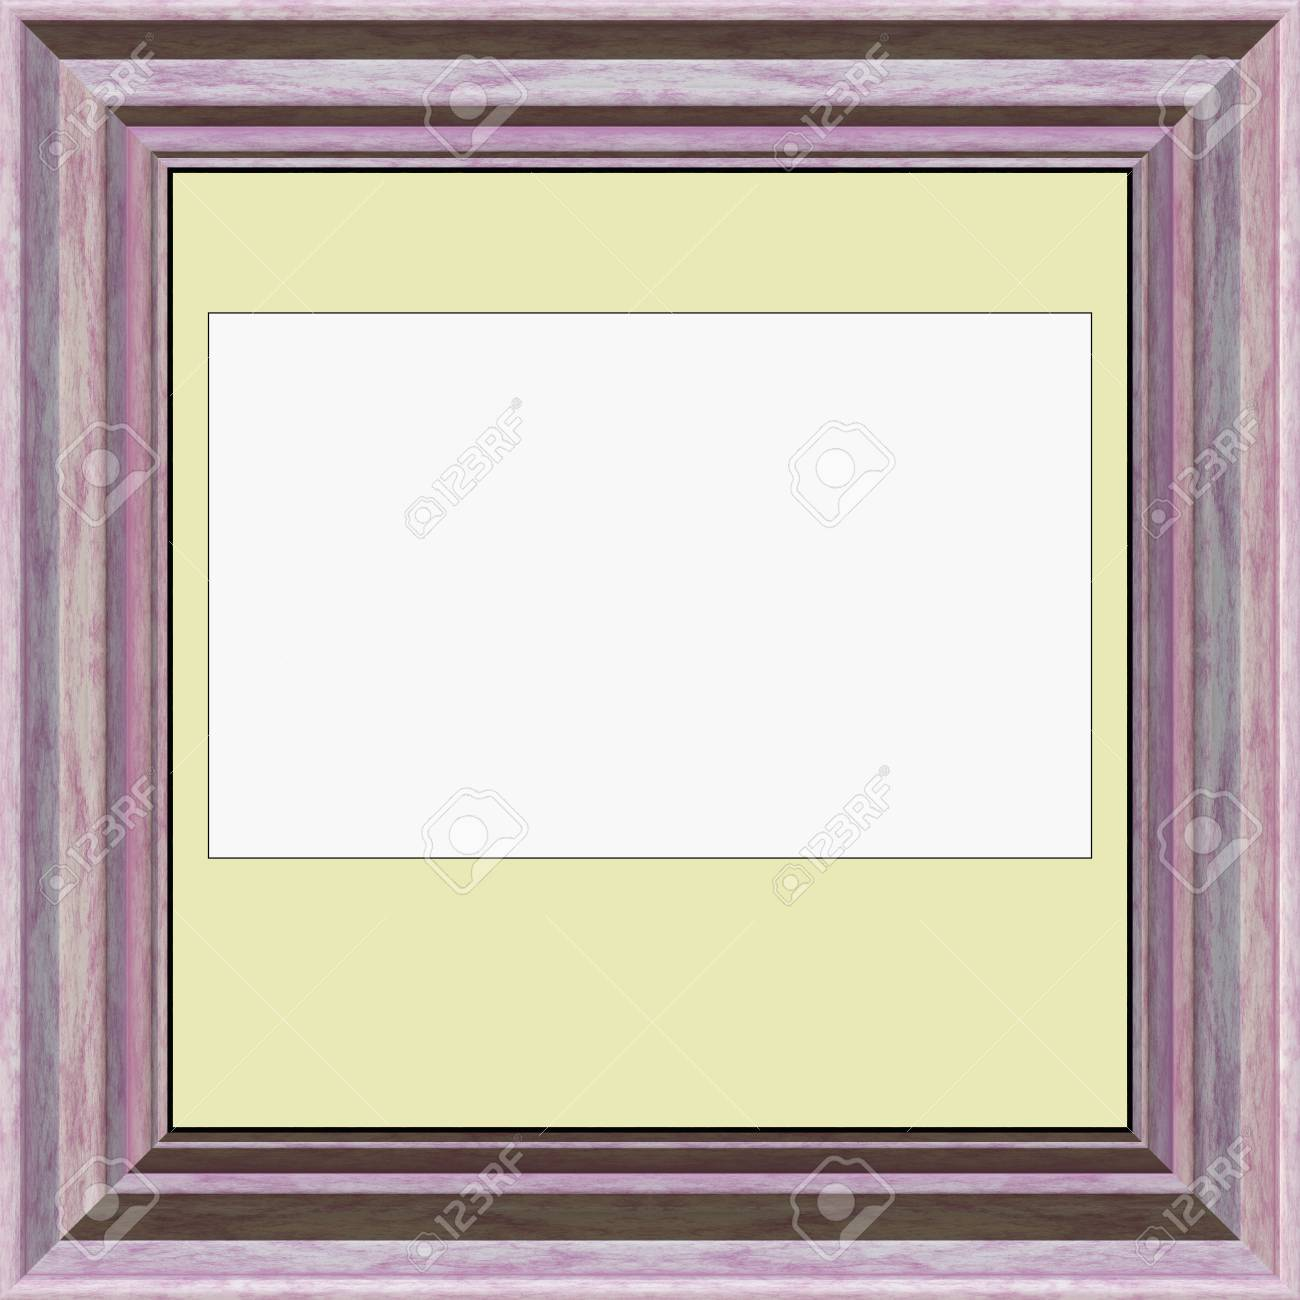 Blank Picture- Vintage Frame. Abstract Wall Decor Interior ...